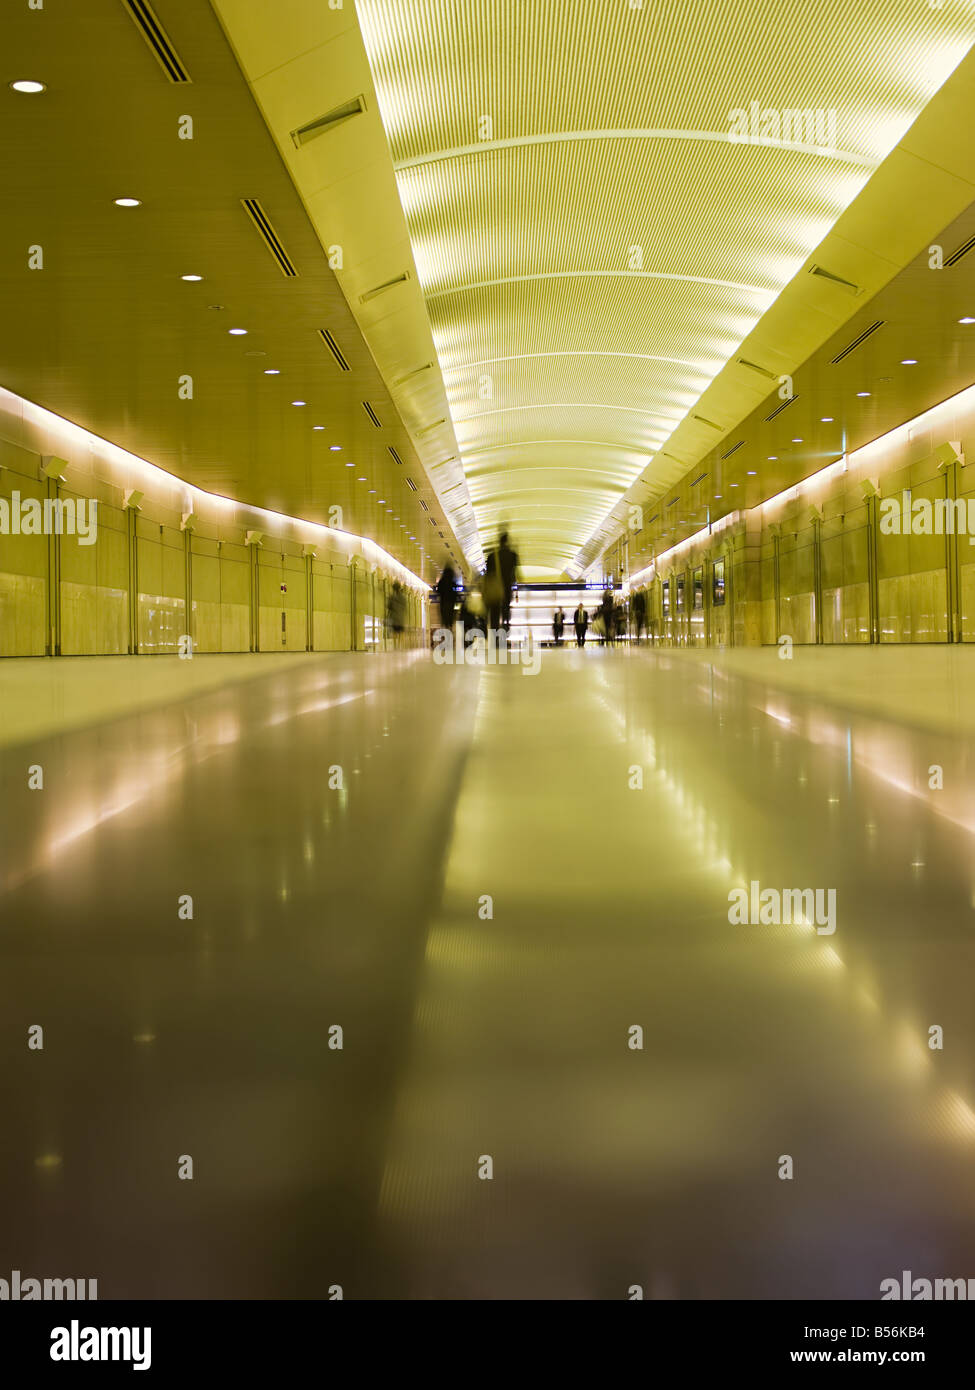 People in corridor - Stock Image